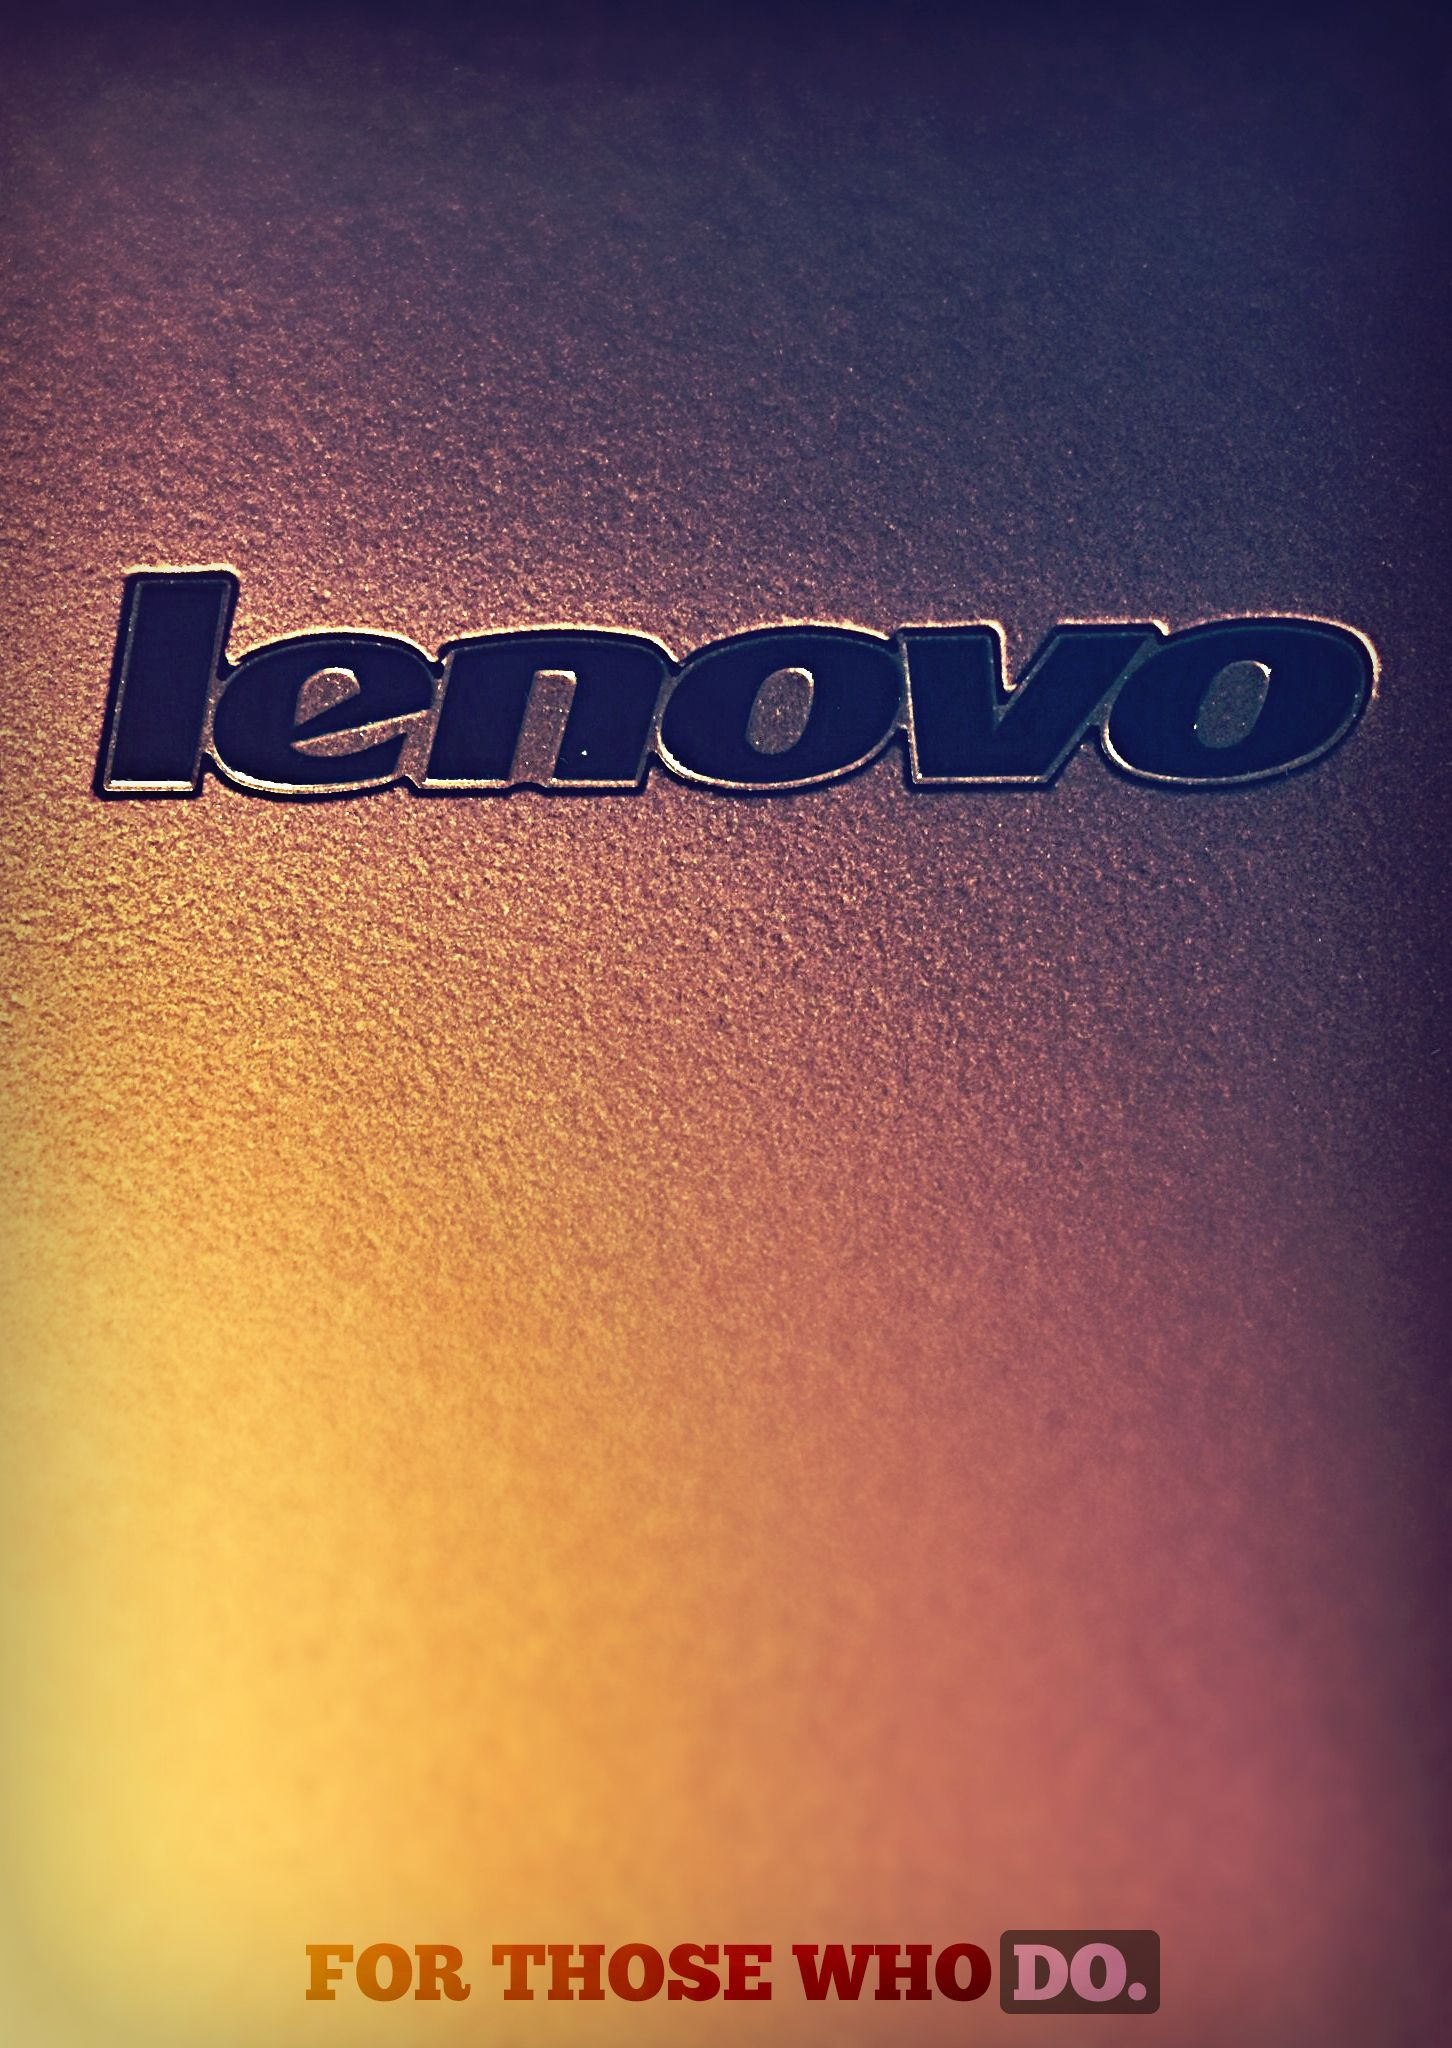 Cartoons animation lenovo wallpapers wallpapers pinterest cartoons animation lenovo wallpapers gumiabroncs Image collections